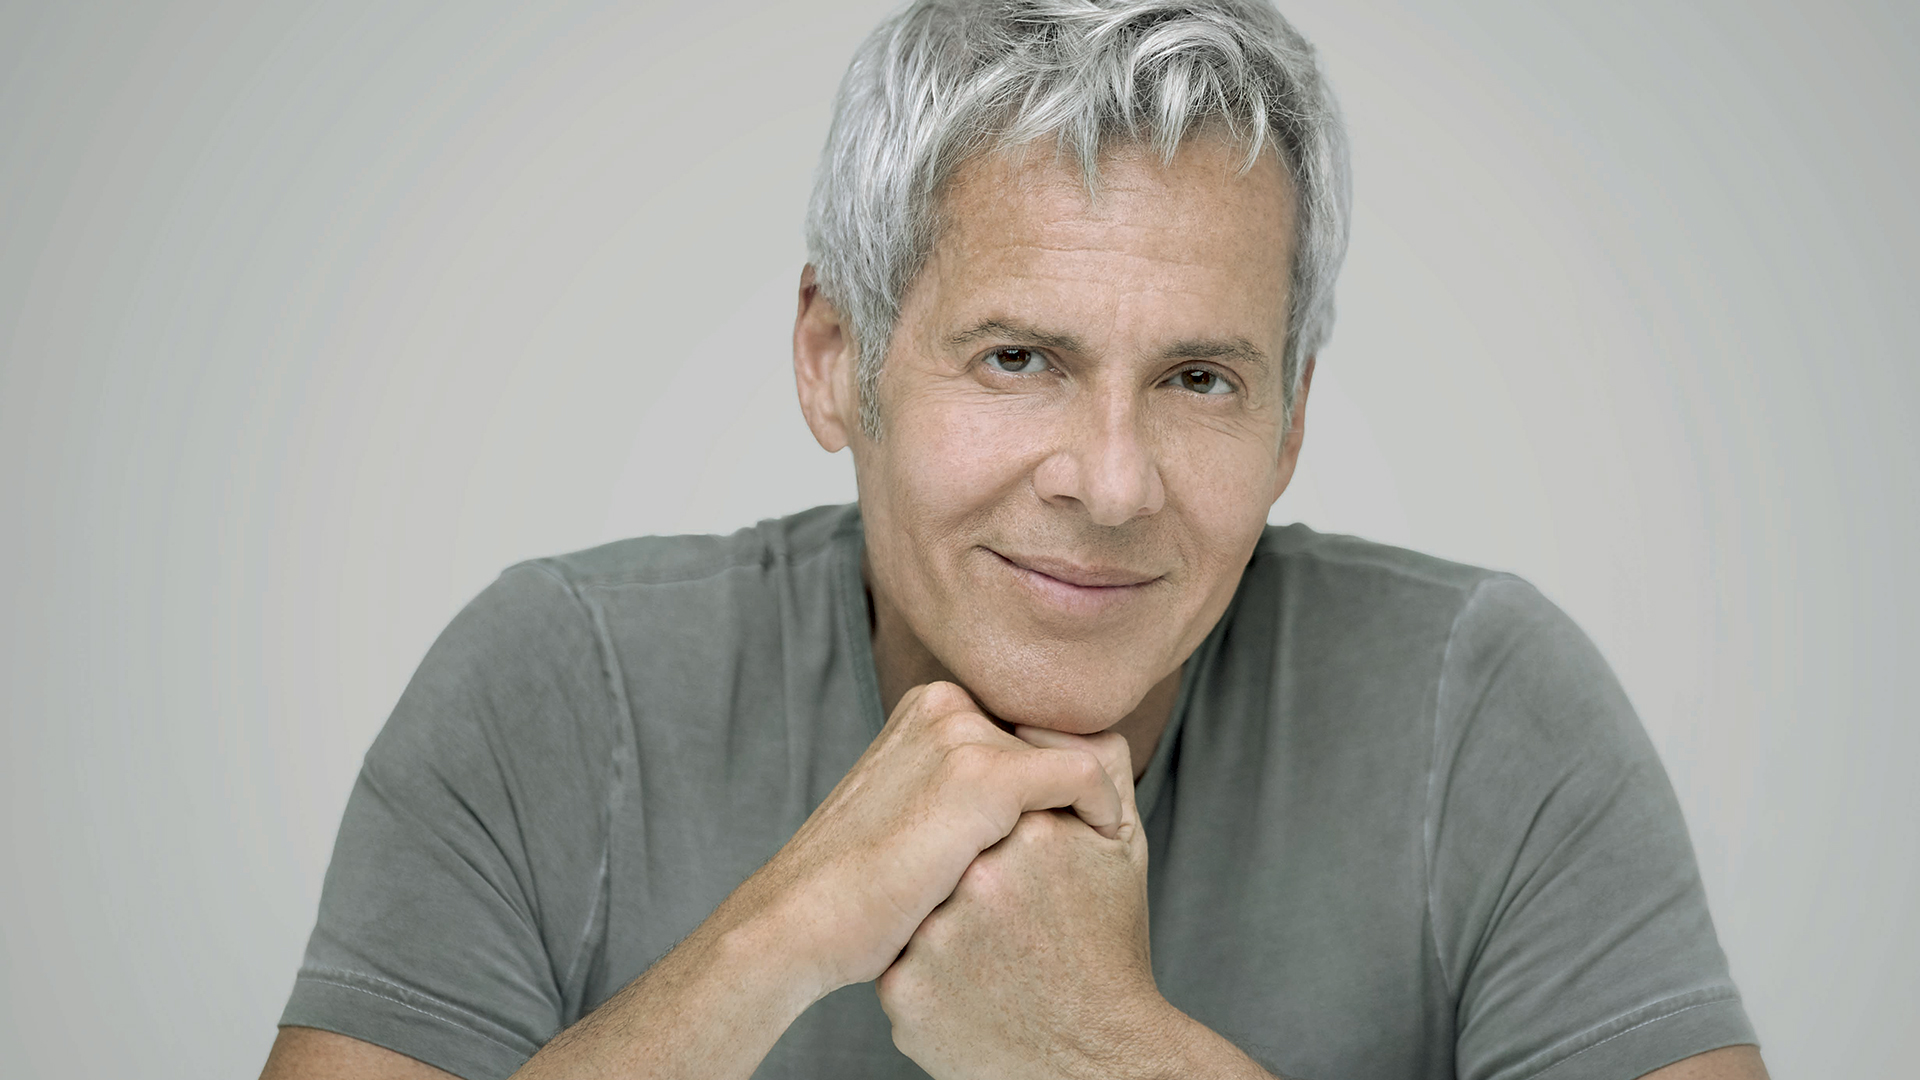 Claudio Baglioni. Credit by: fanart.tv